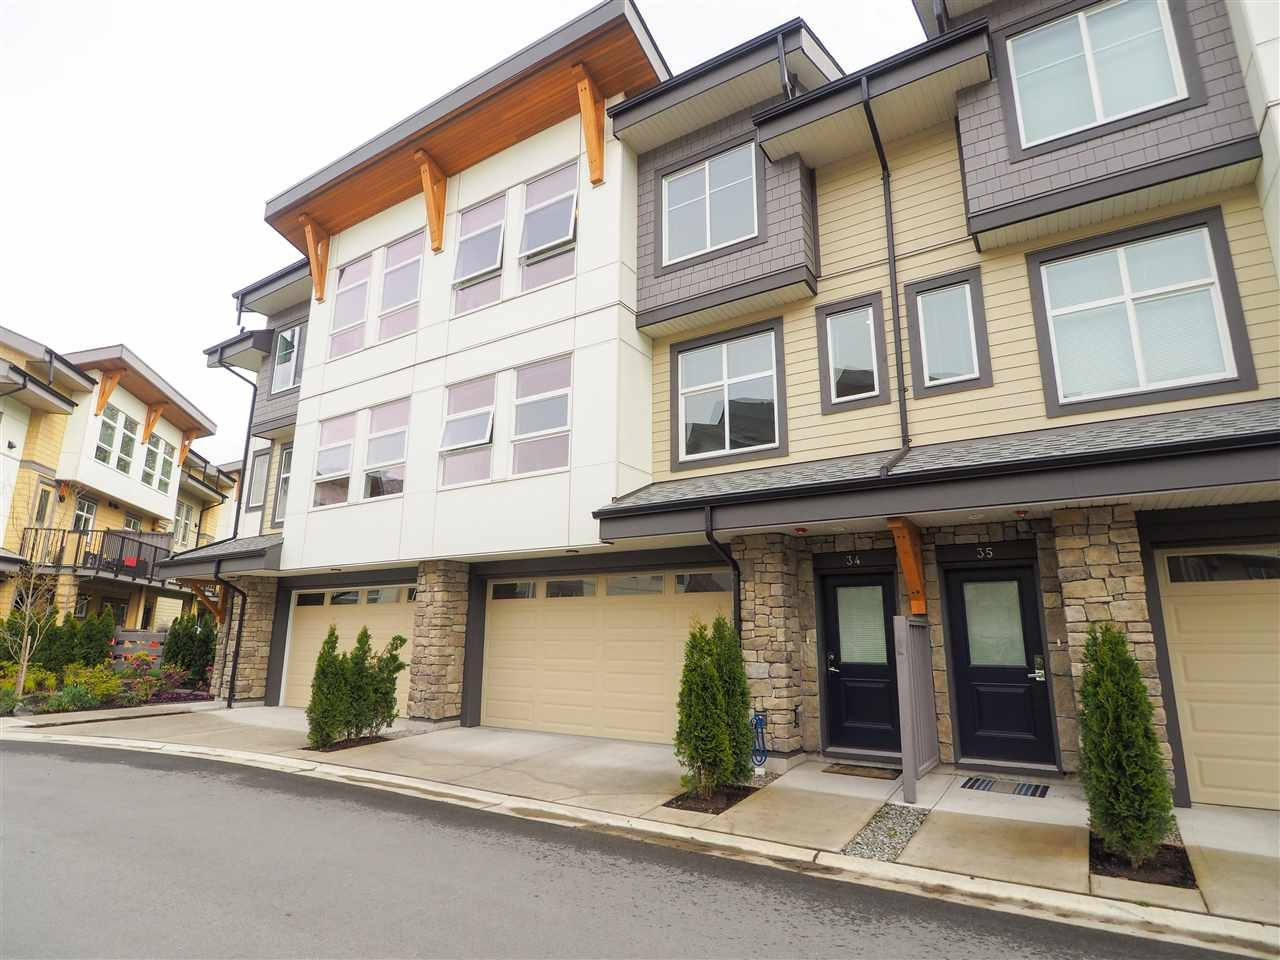 """Main Photo: 34 39548 LOGGERS Lane in Squamish: Brennan Center Townhouse for sale in """"SEVEN PEAKS"""" : MLS®# R2452364"""